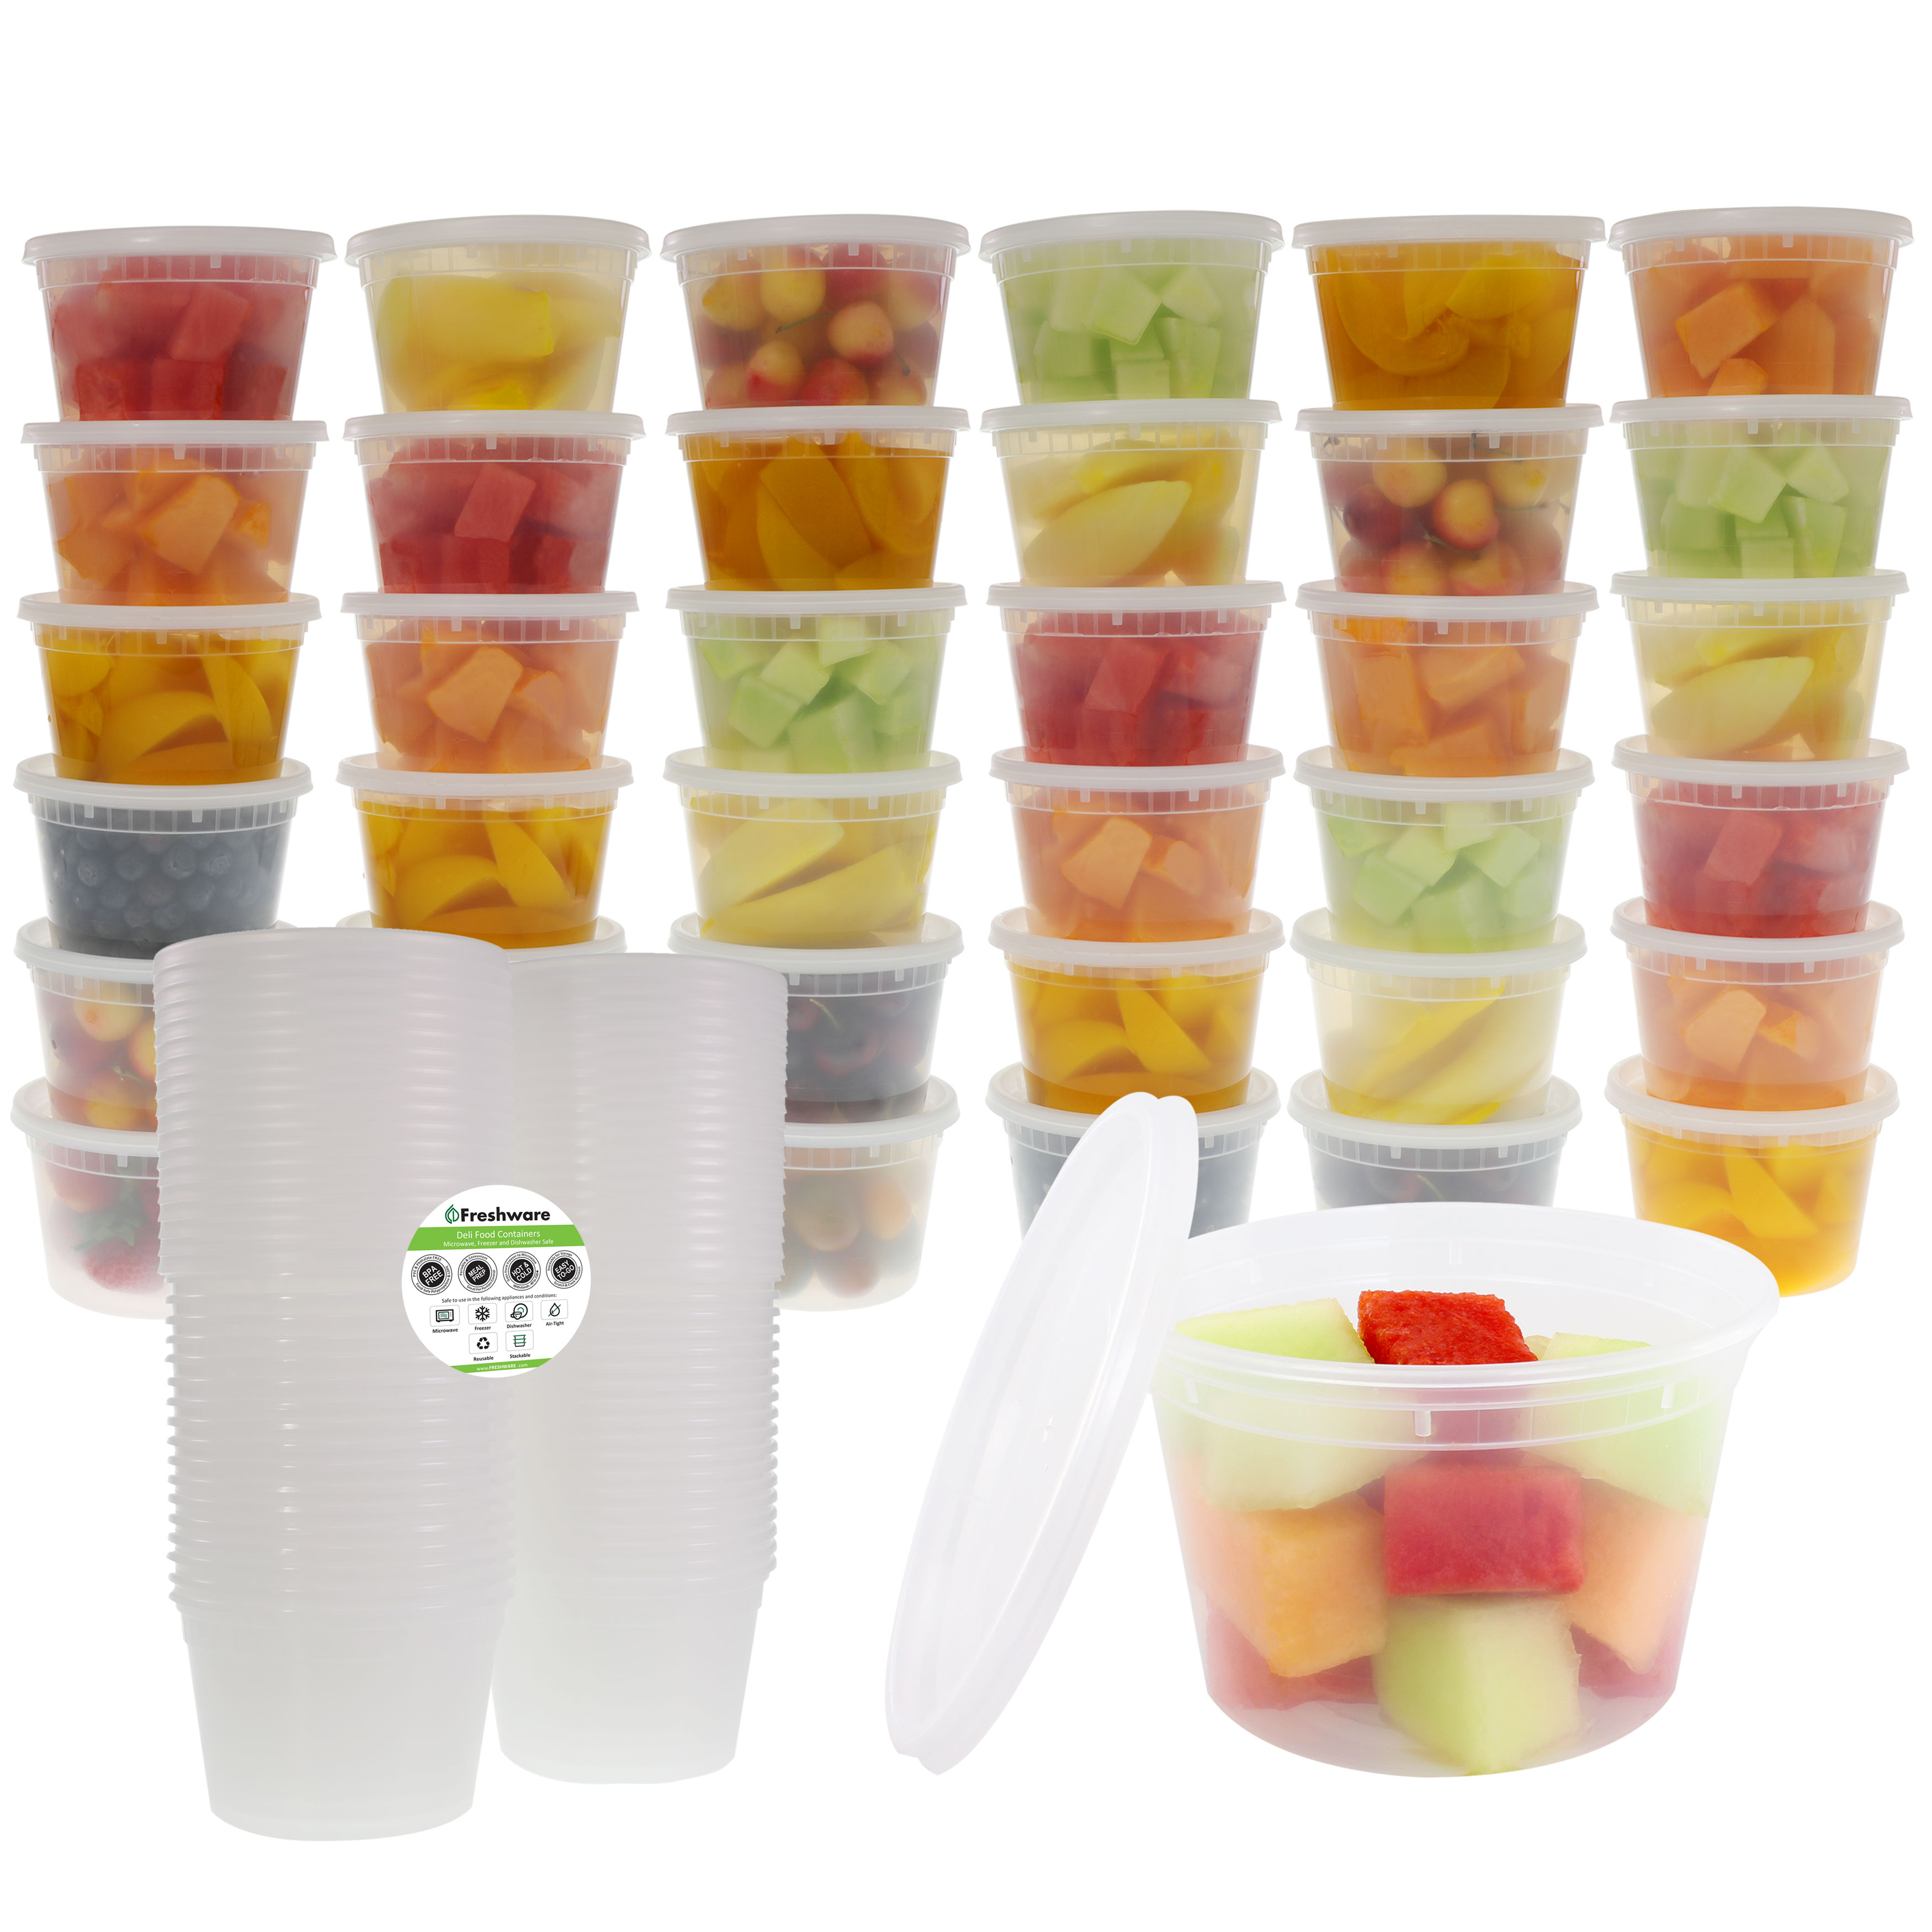 Freshware Plastic Containers with Lids, 16 Ounce, 36-Pack, YH-S16X36